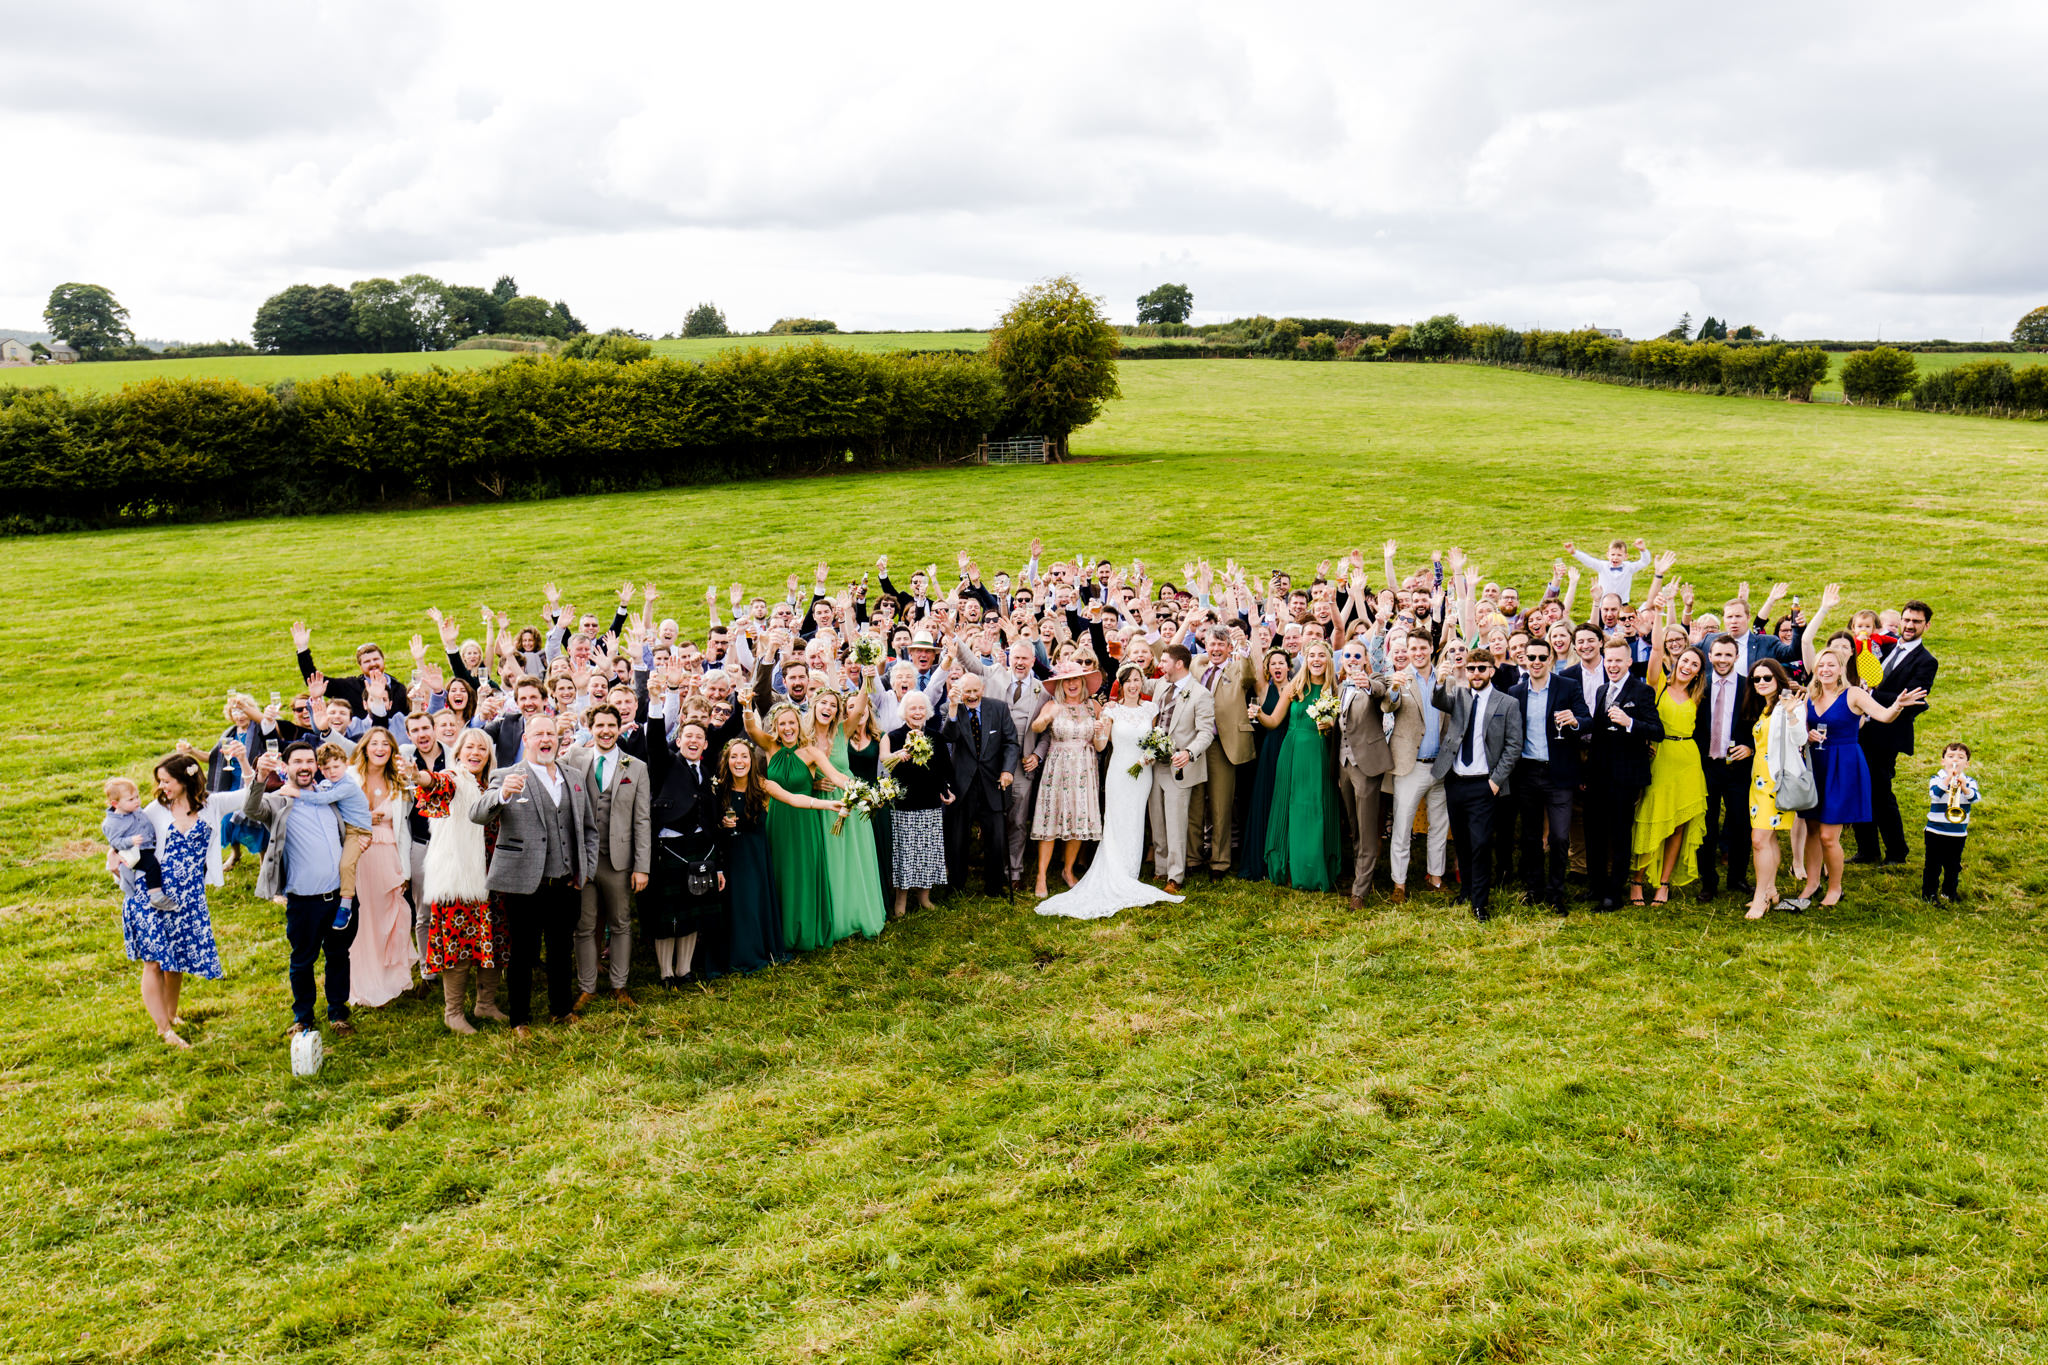 Wedding group photo in field